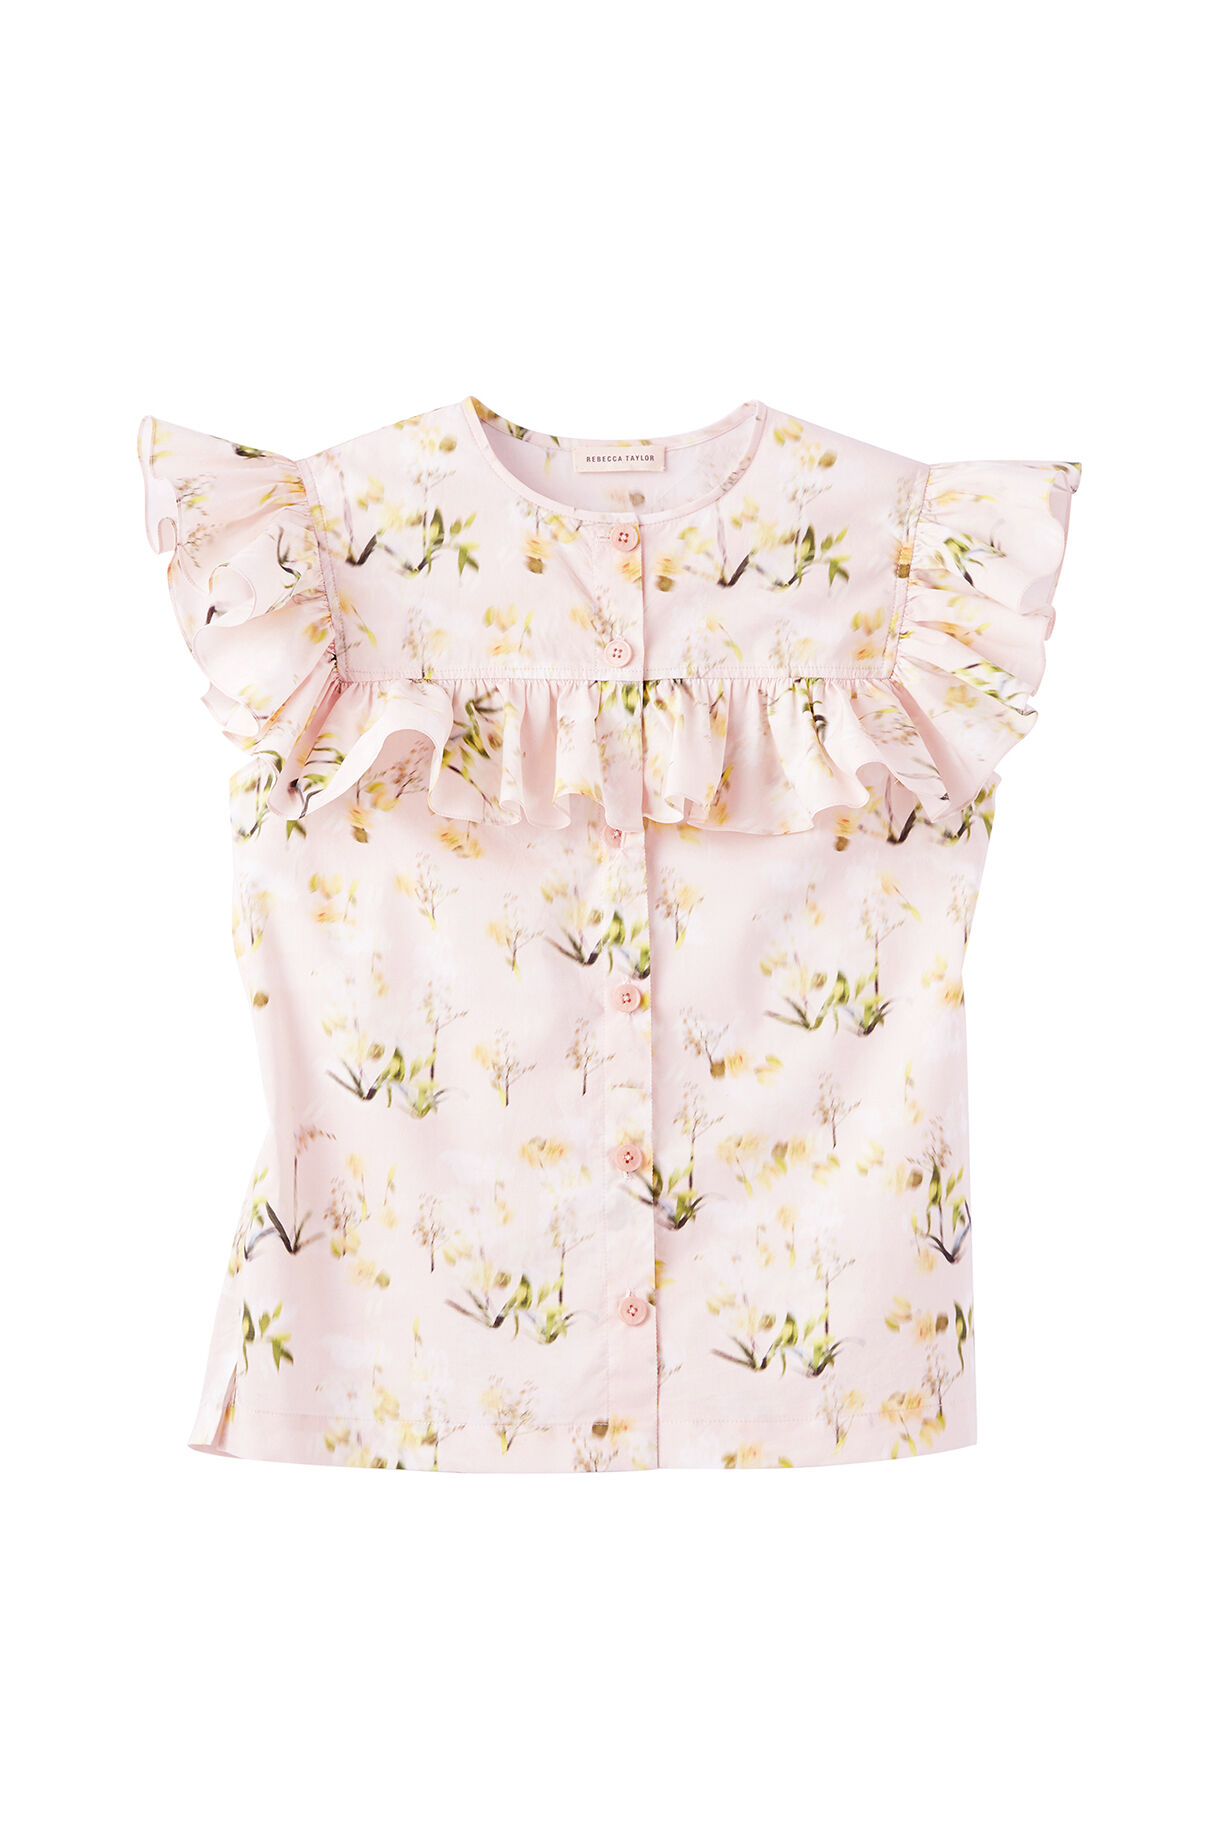 c1ff9f8956ff2 Firefly Floral Top · Firefly Floral Top ...